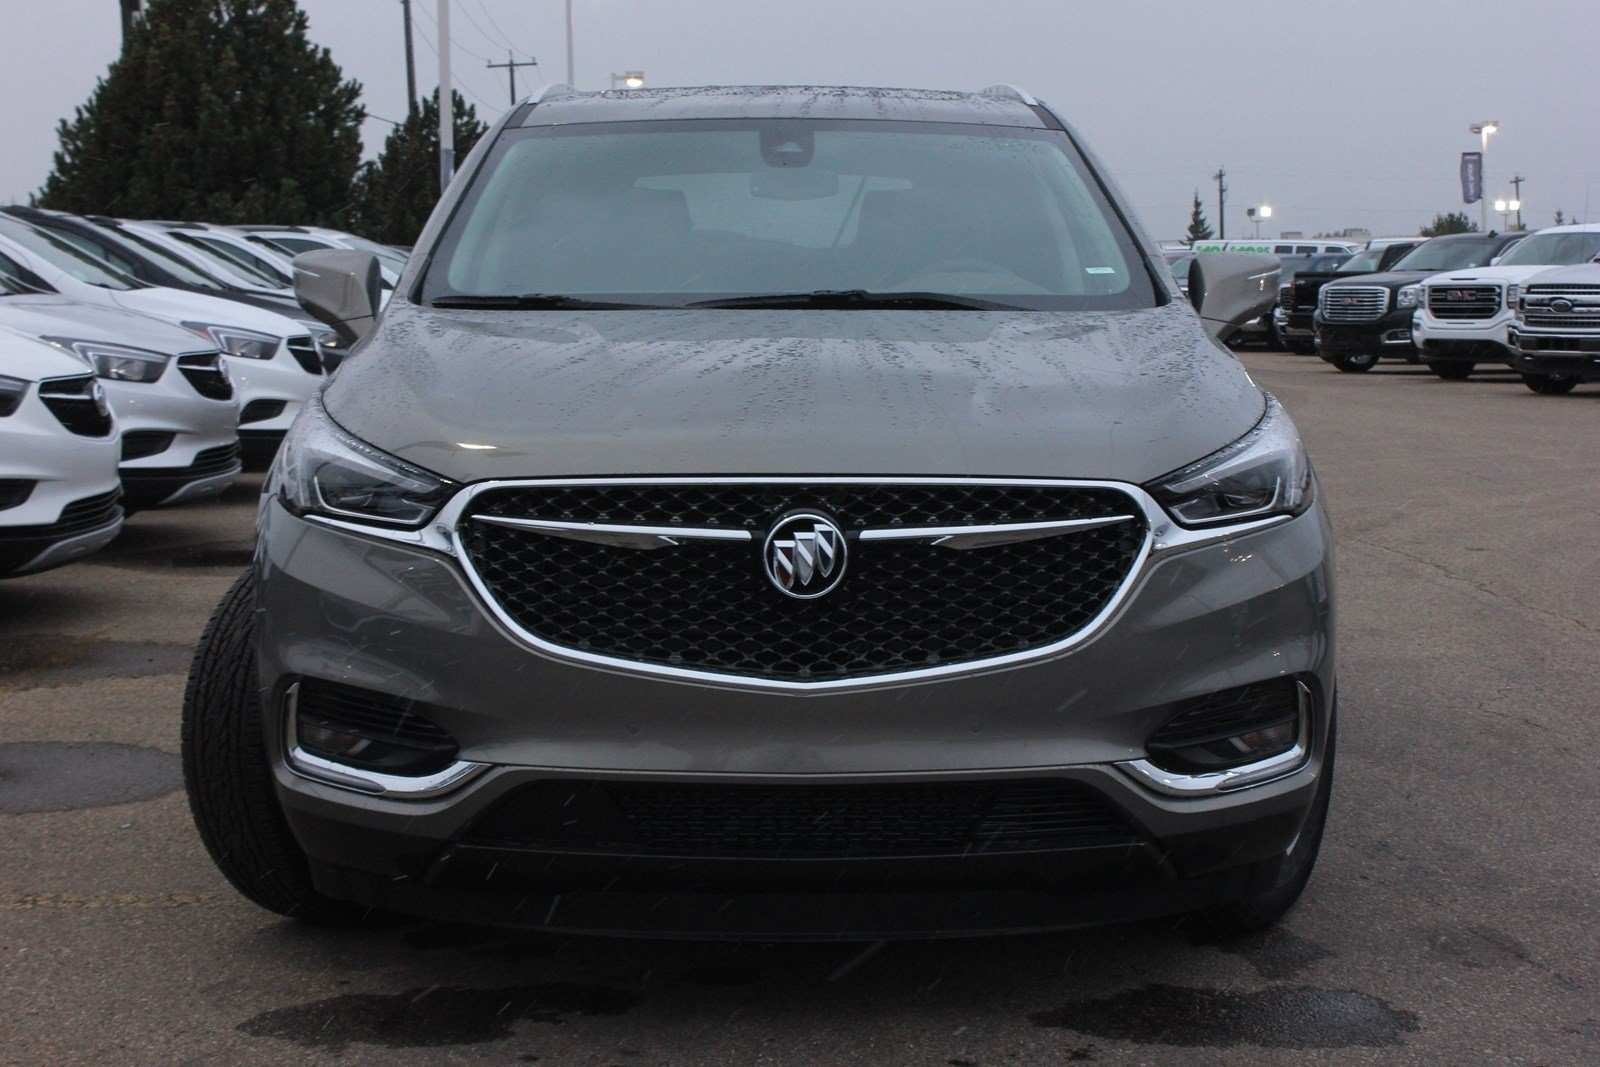 29 New 2019 Buick Enclave Towing Capacity Specs Interior by 2019 Buick Enclave Towing Capacity Specs